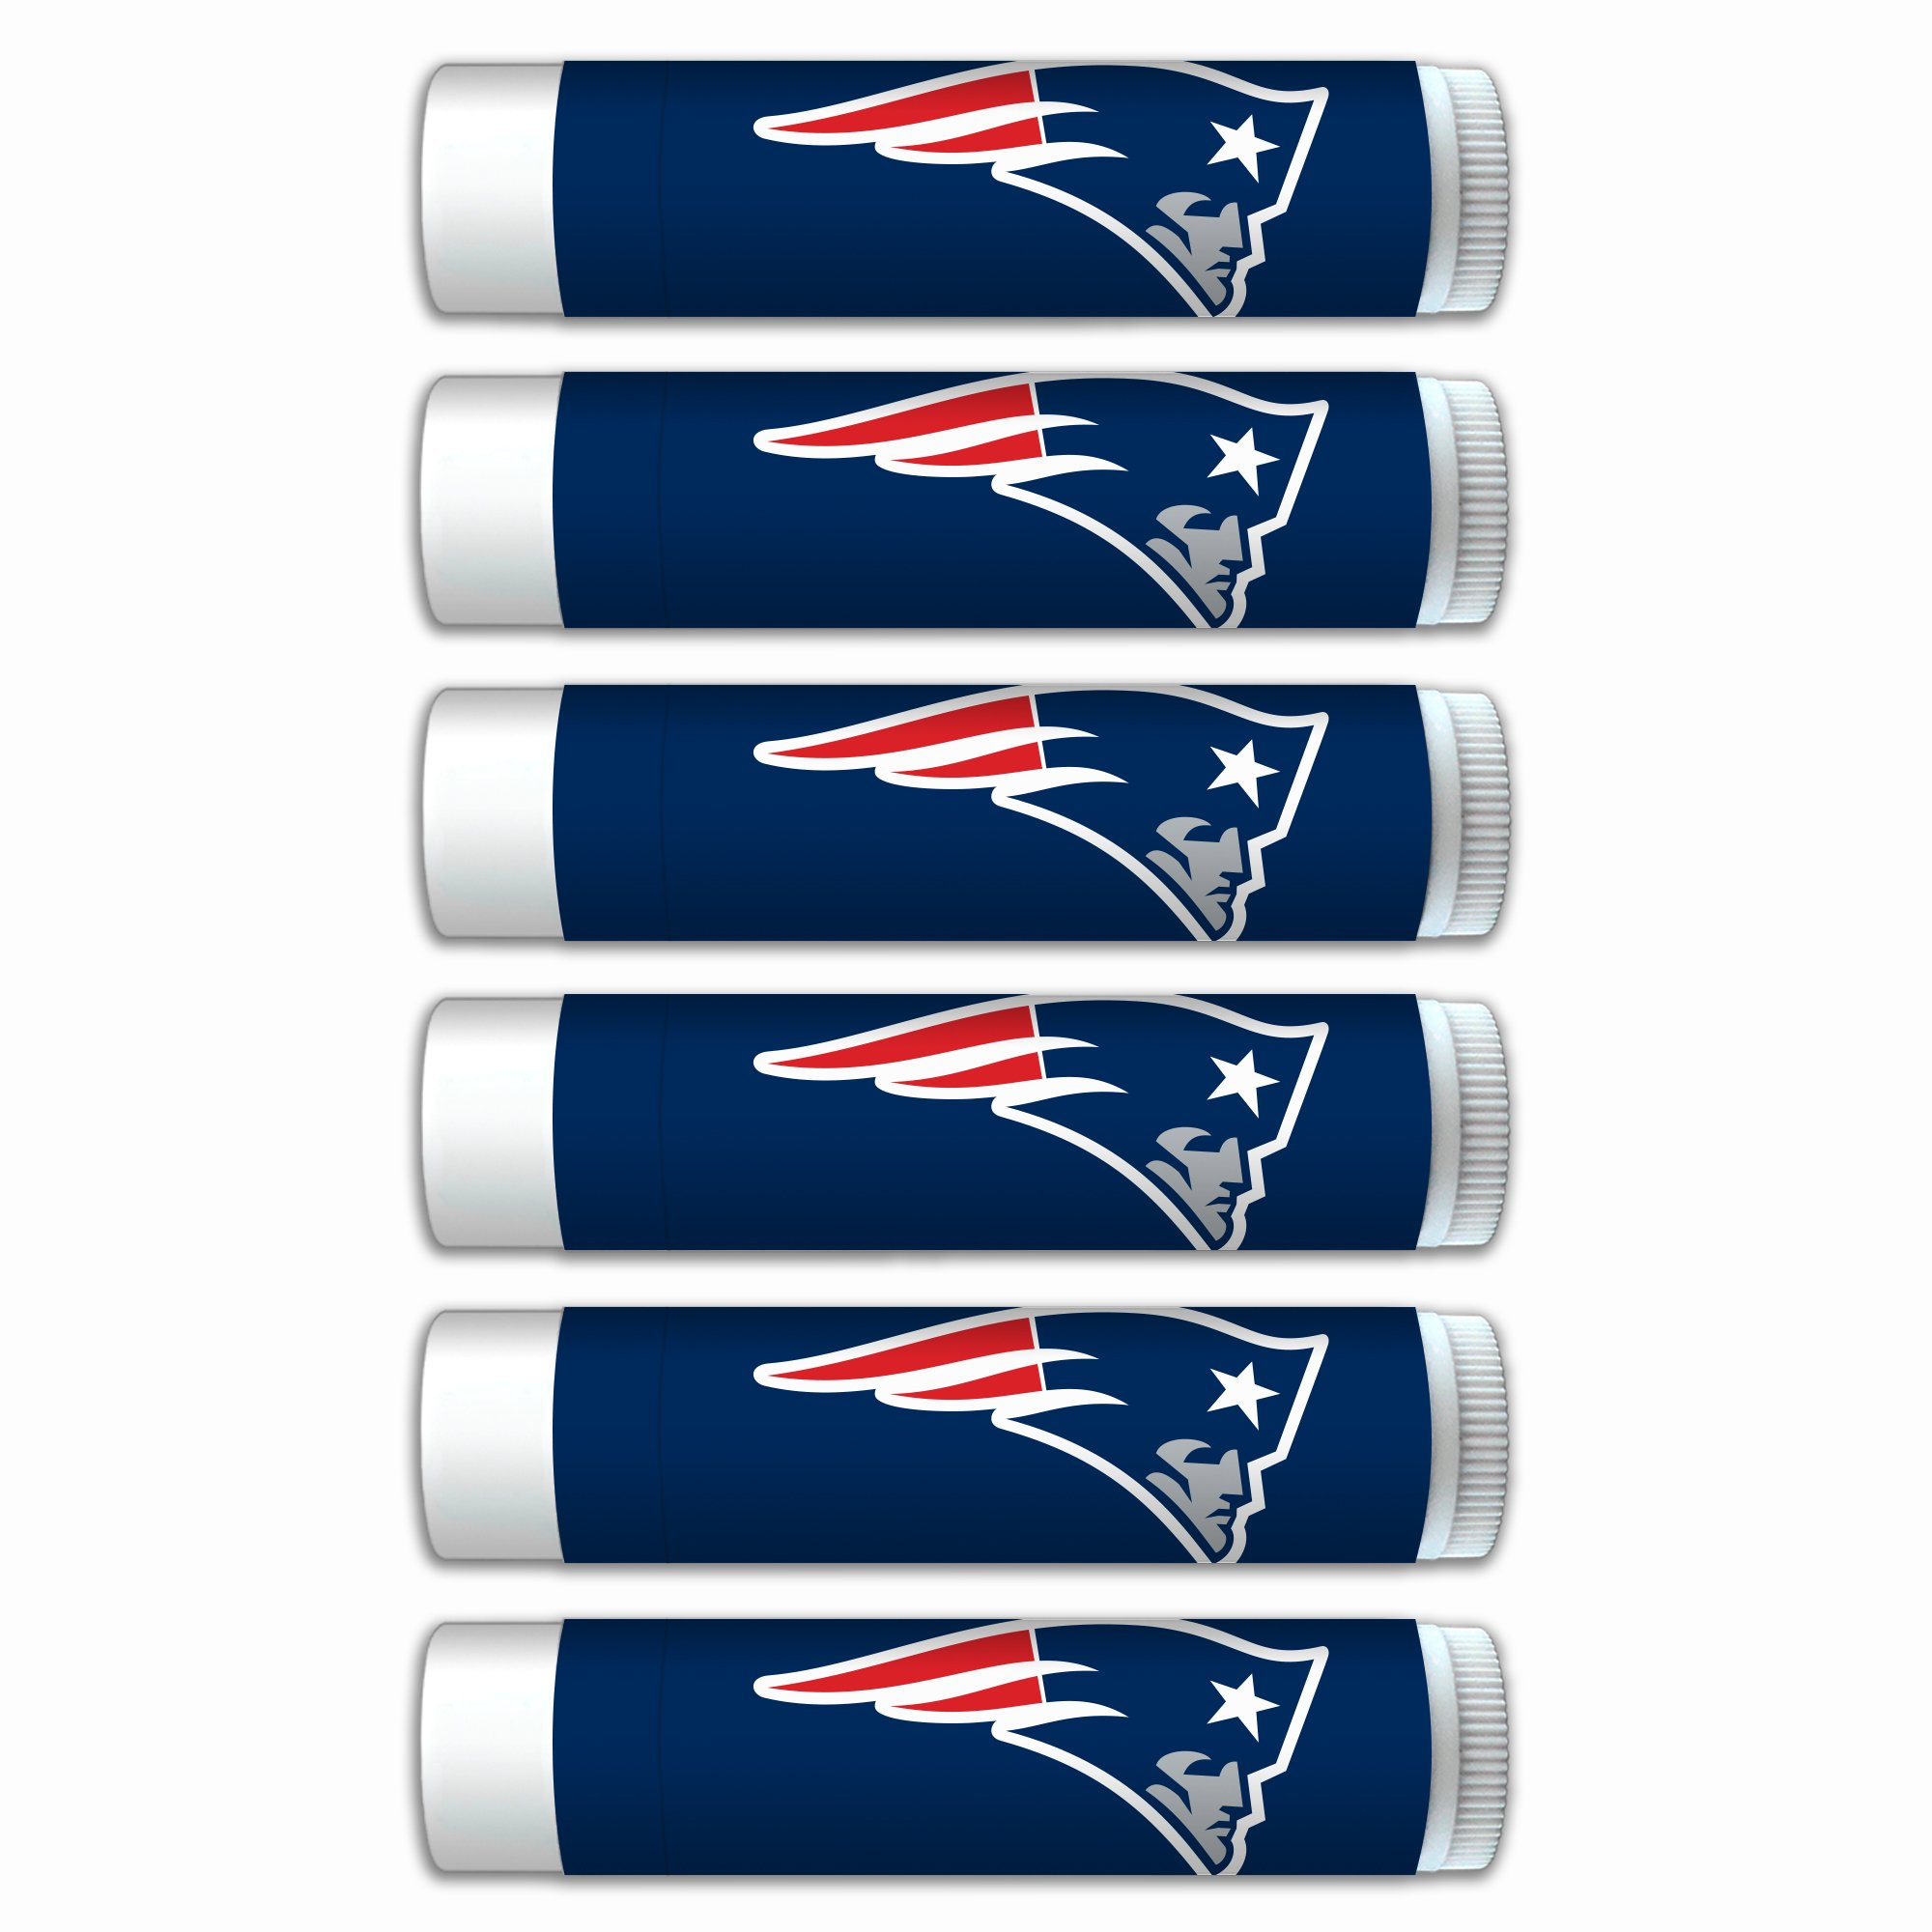 $2.00 OFF New England Patriots Smooth Mint Lip Balm 6-Pack with SPF 15, Beeswax, Coconut Oil, Aloe Vera. NFL Football Gifts for Men and Women, Mother's Day, Fathers Day, Easter, Stocking Stuffers